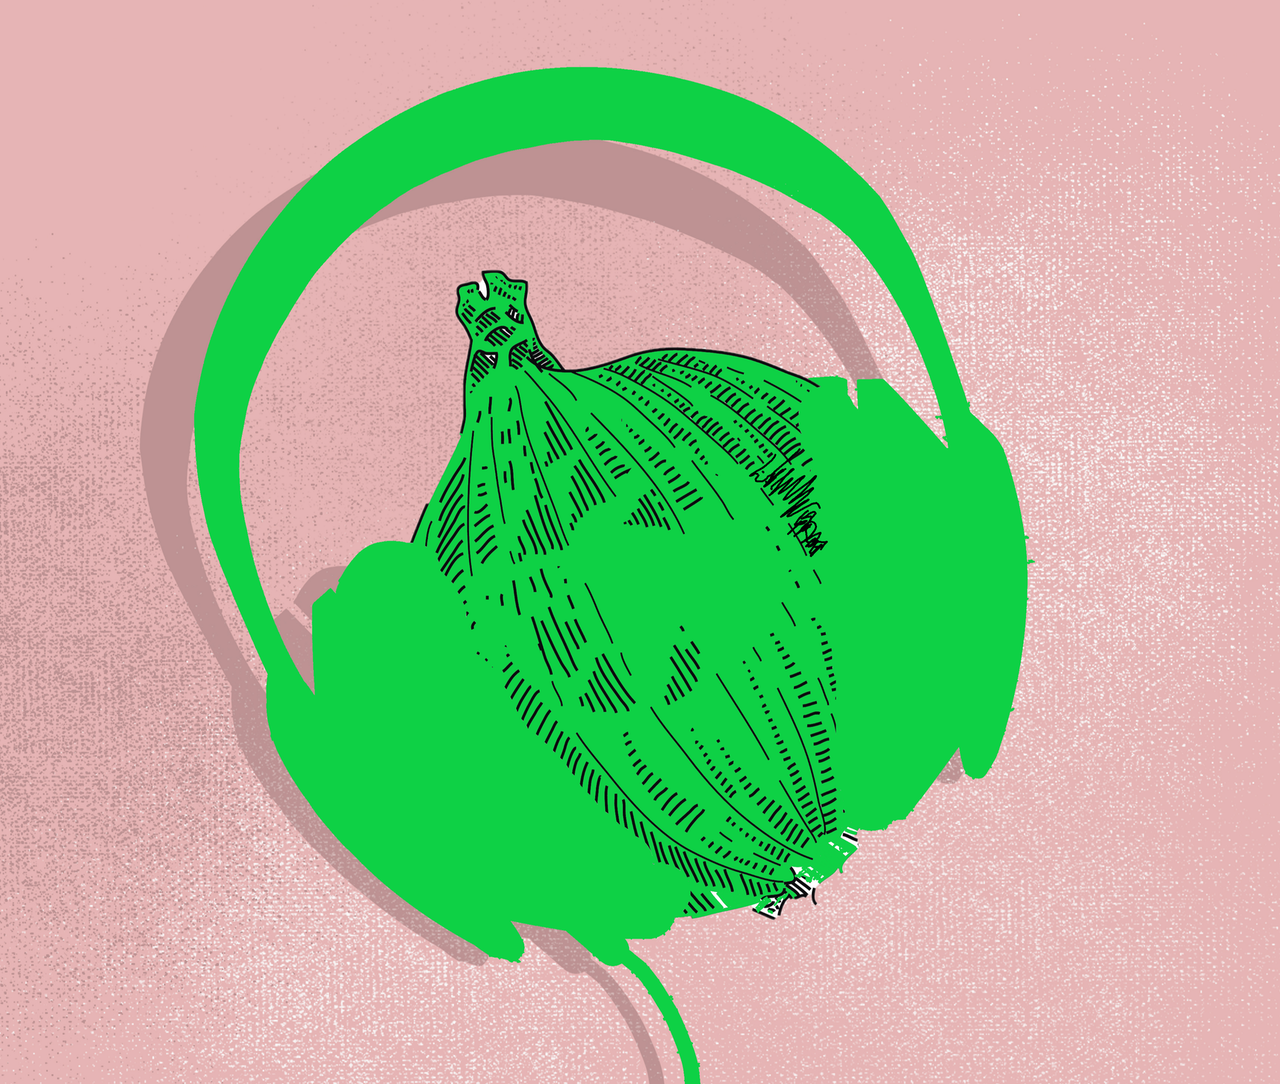 A Good Place: The only daily news podcast you need is from The Onion